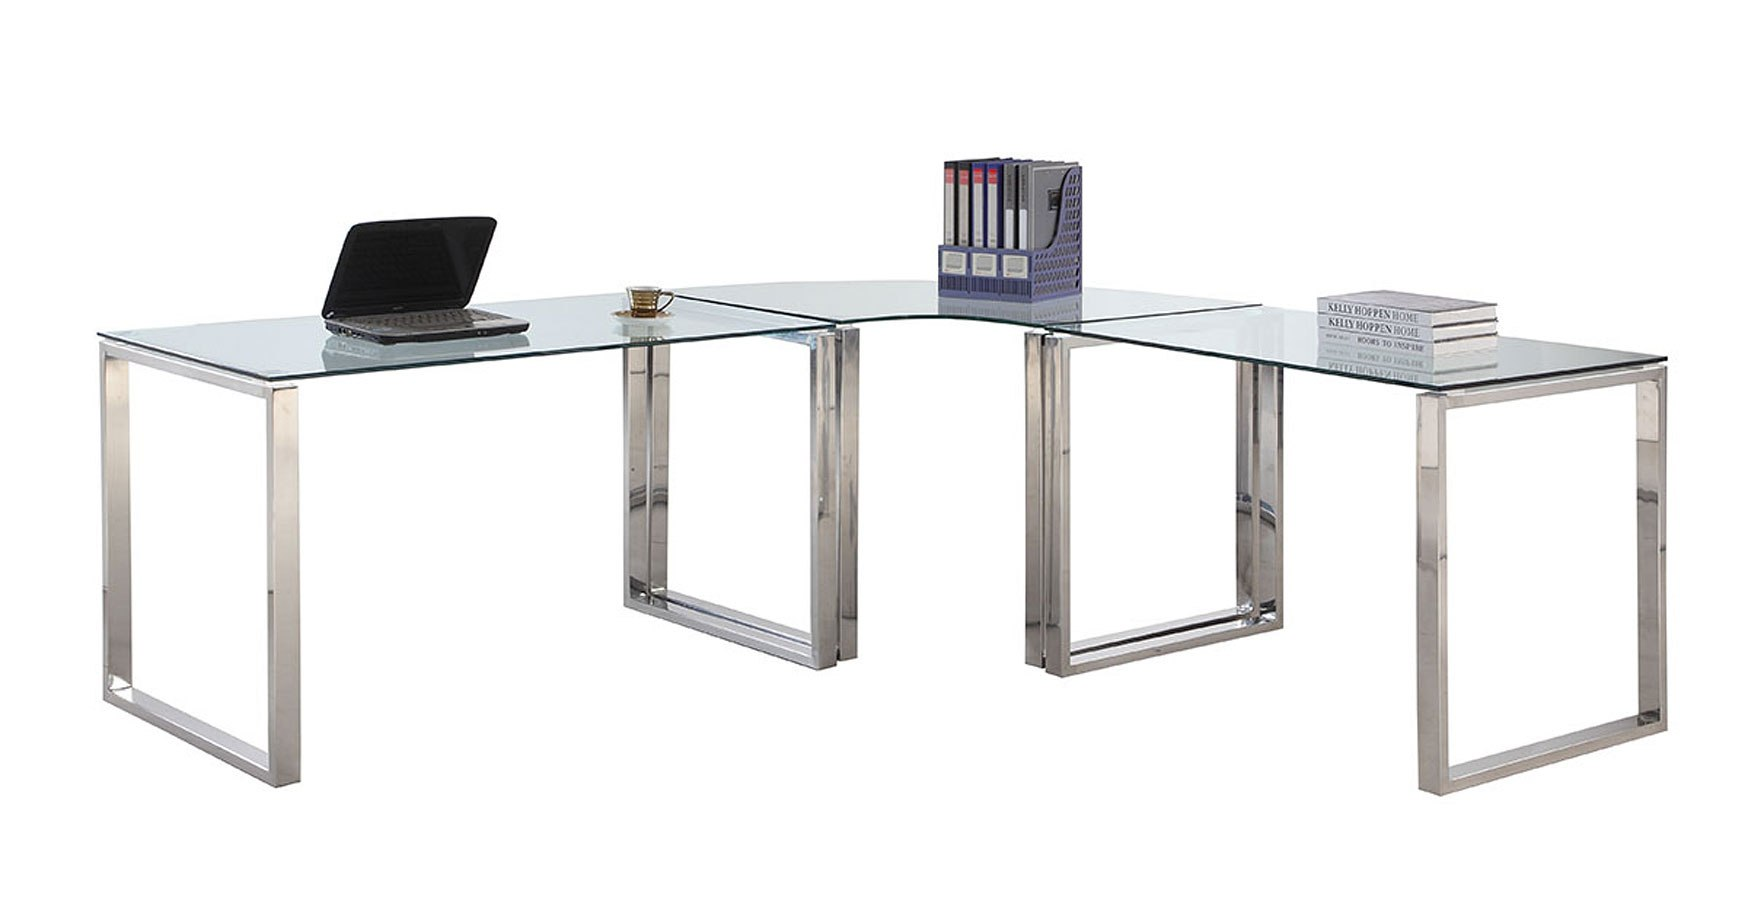 Genial Clear Glass And Stainless Steel Corner Office Desk By Chintaly Imports |  FurniturePick